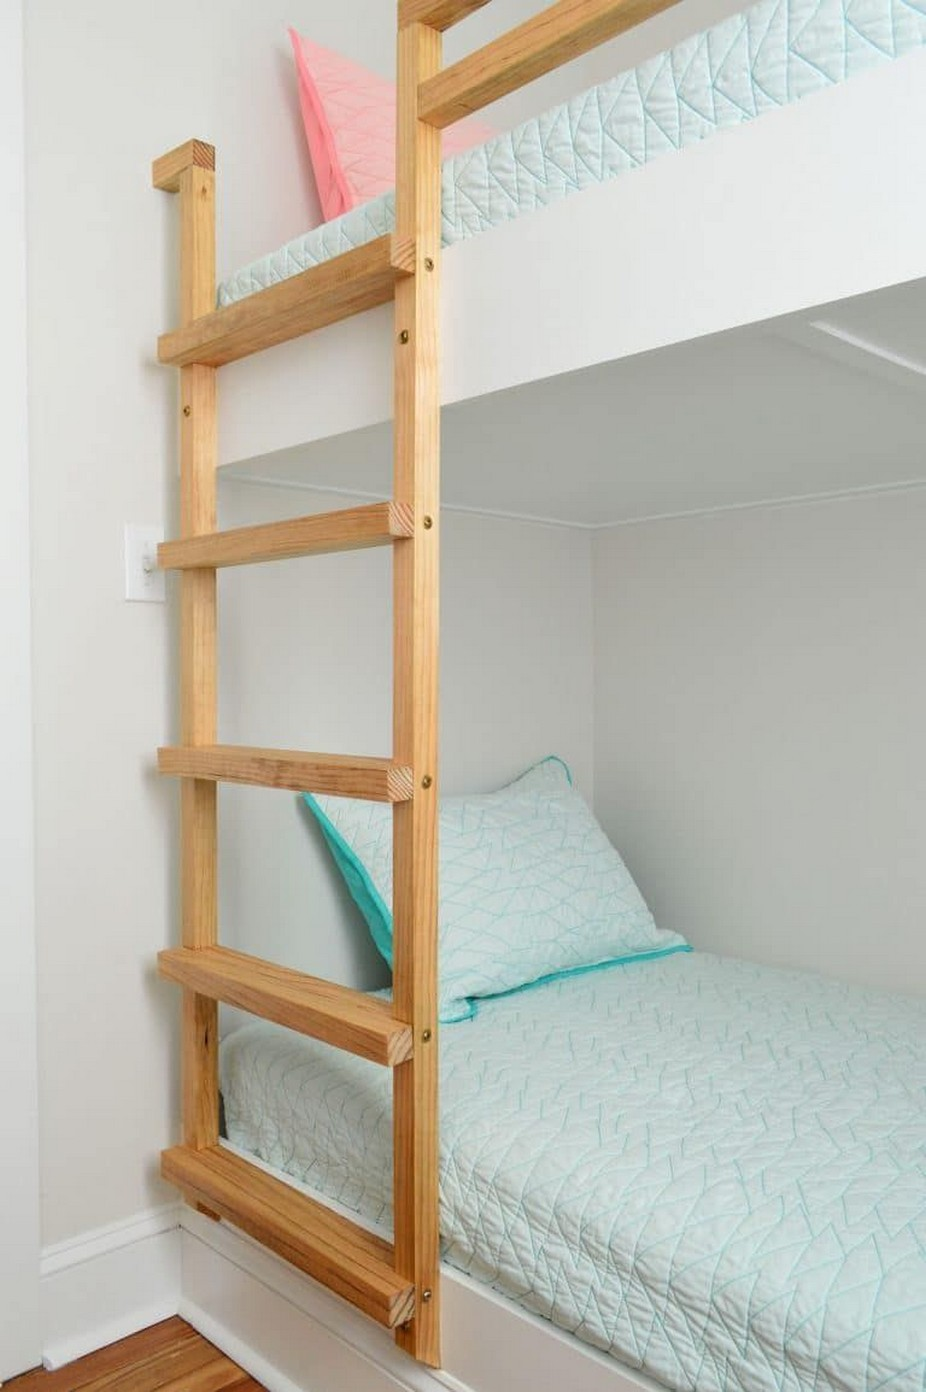 42 Model Of Kids Bunk Bed Design Ideas Top 5 Bunk Beds To Choose From 19